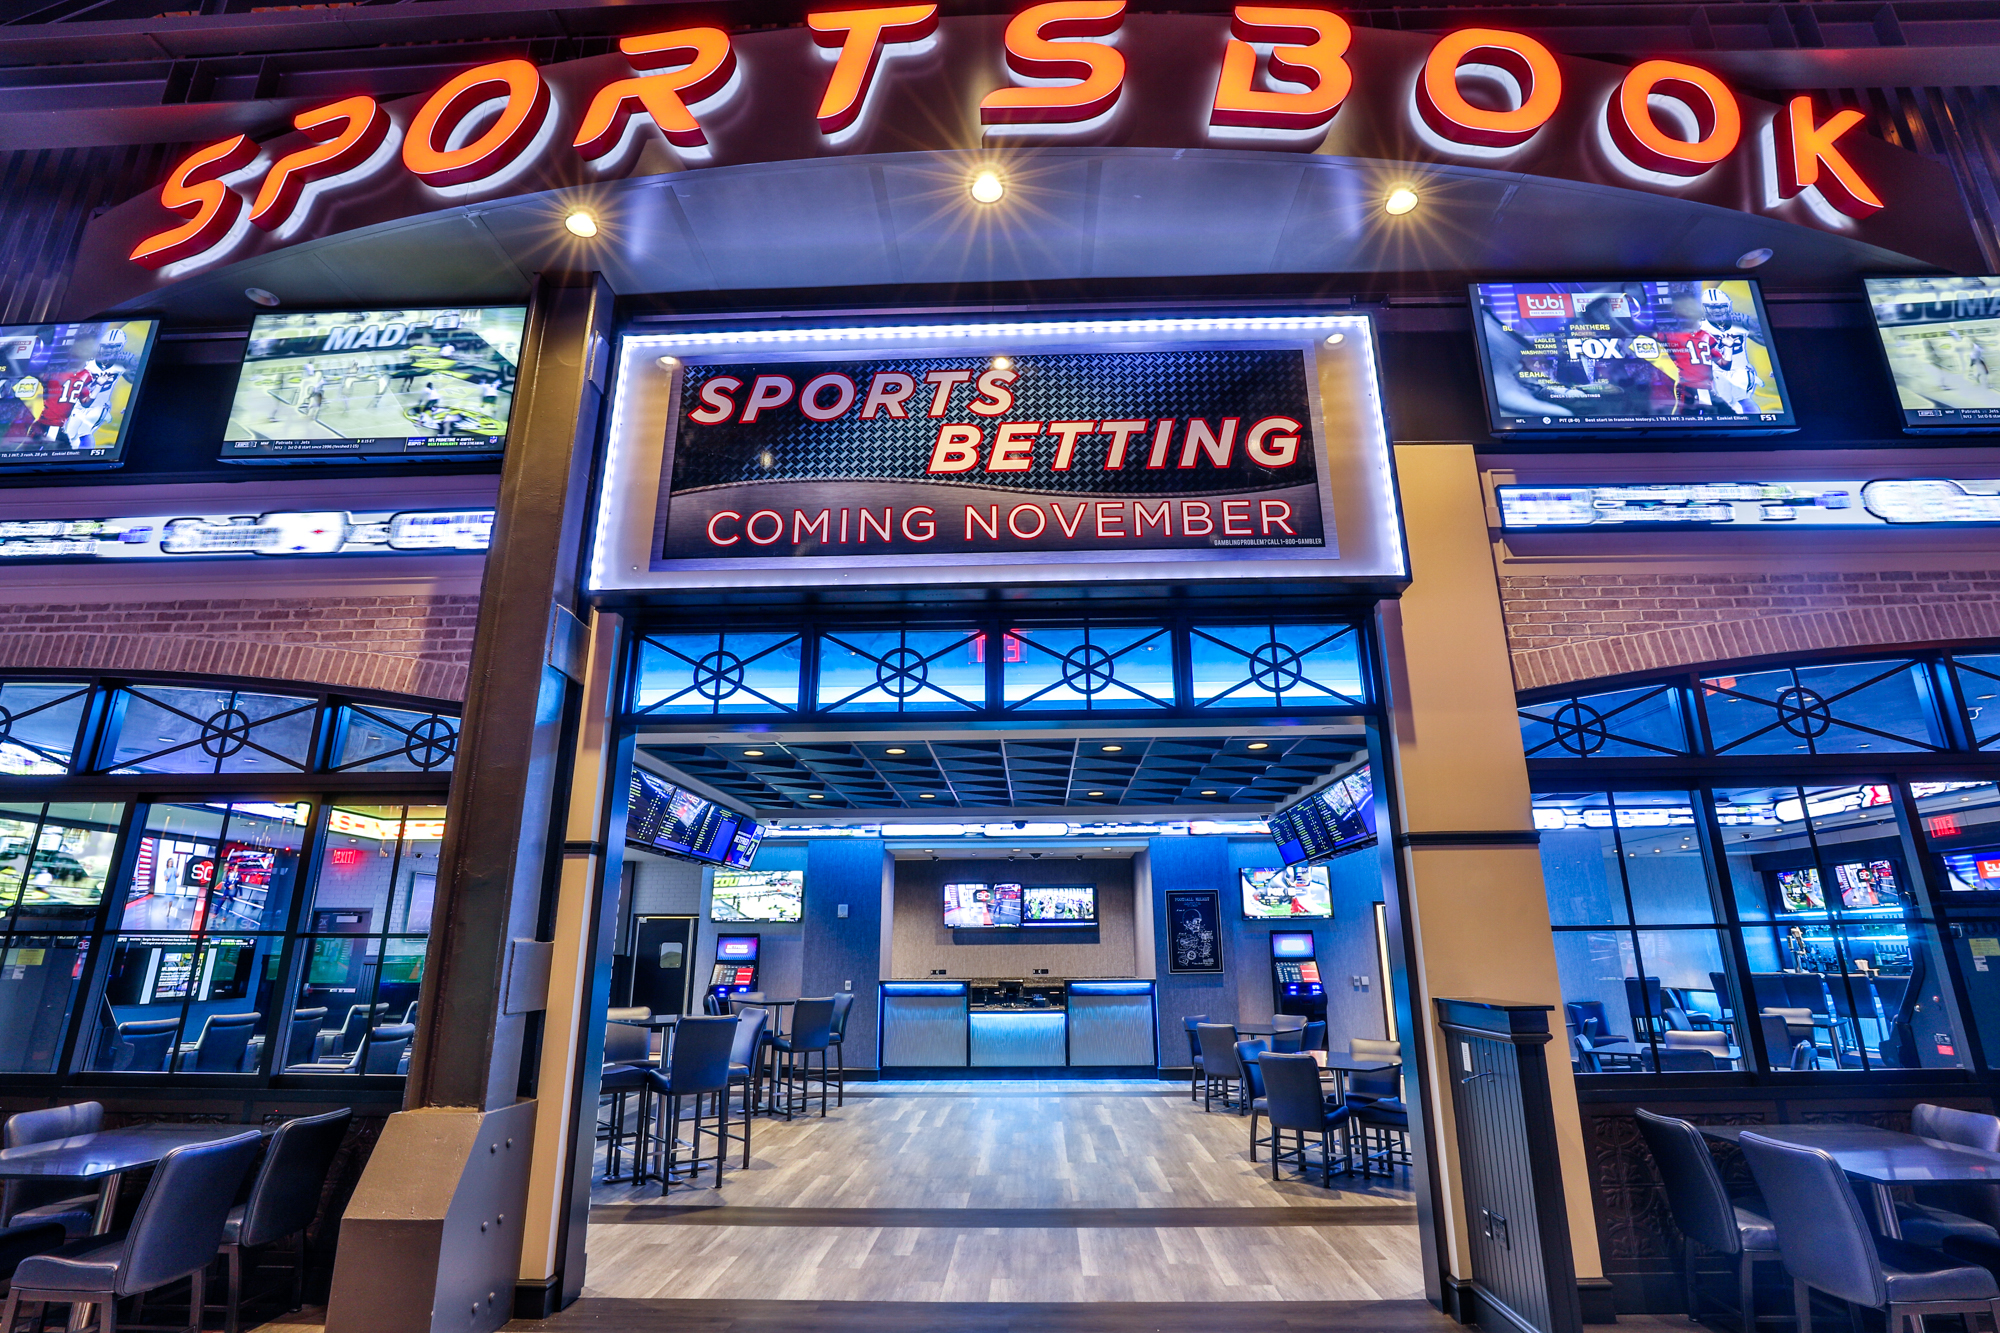 grand valley sports betting